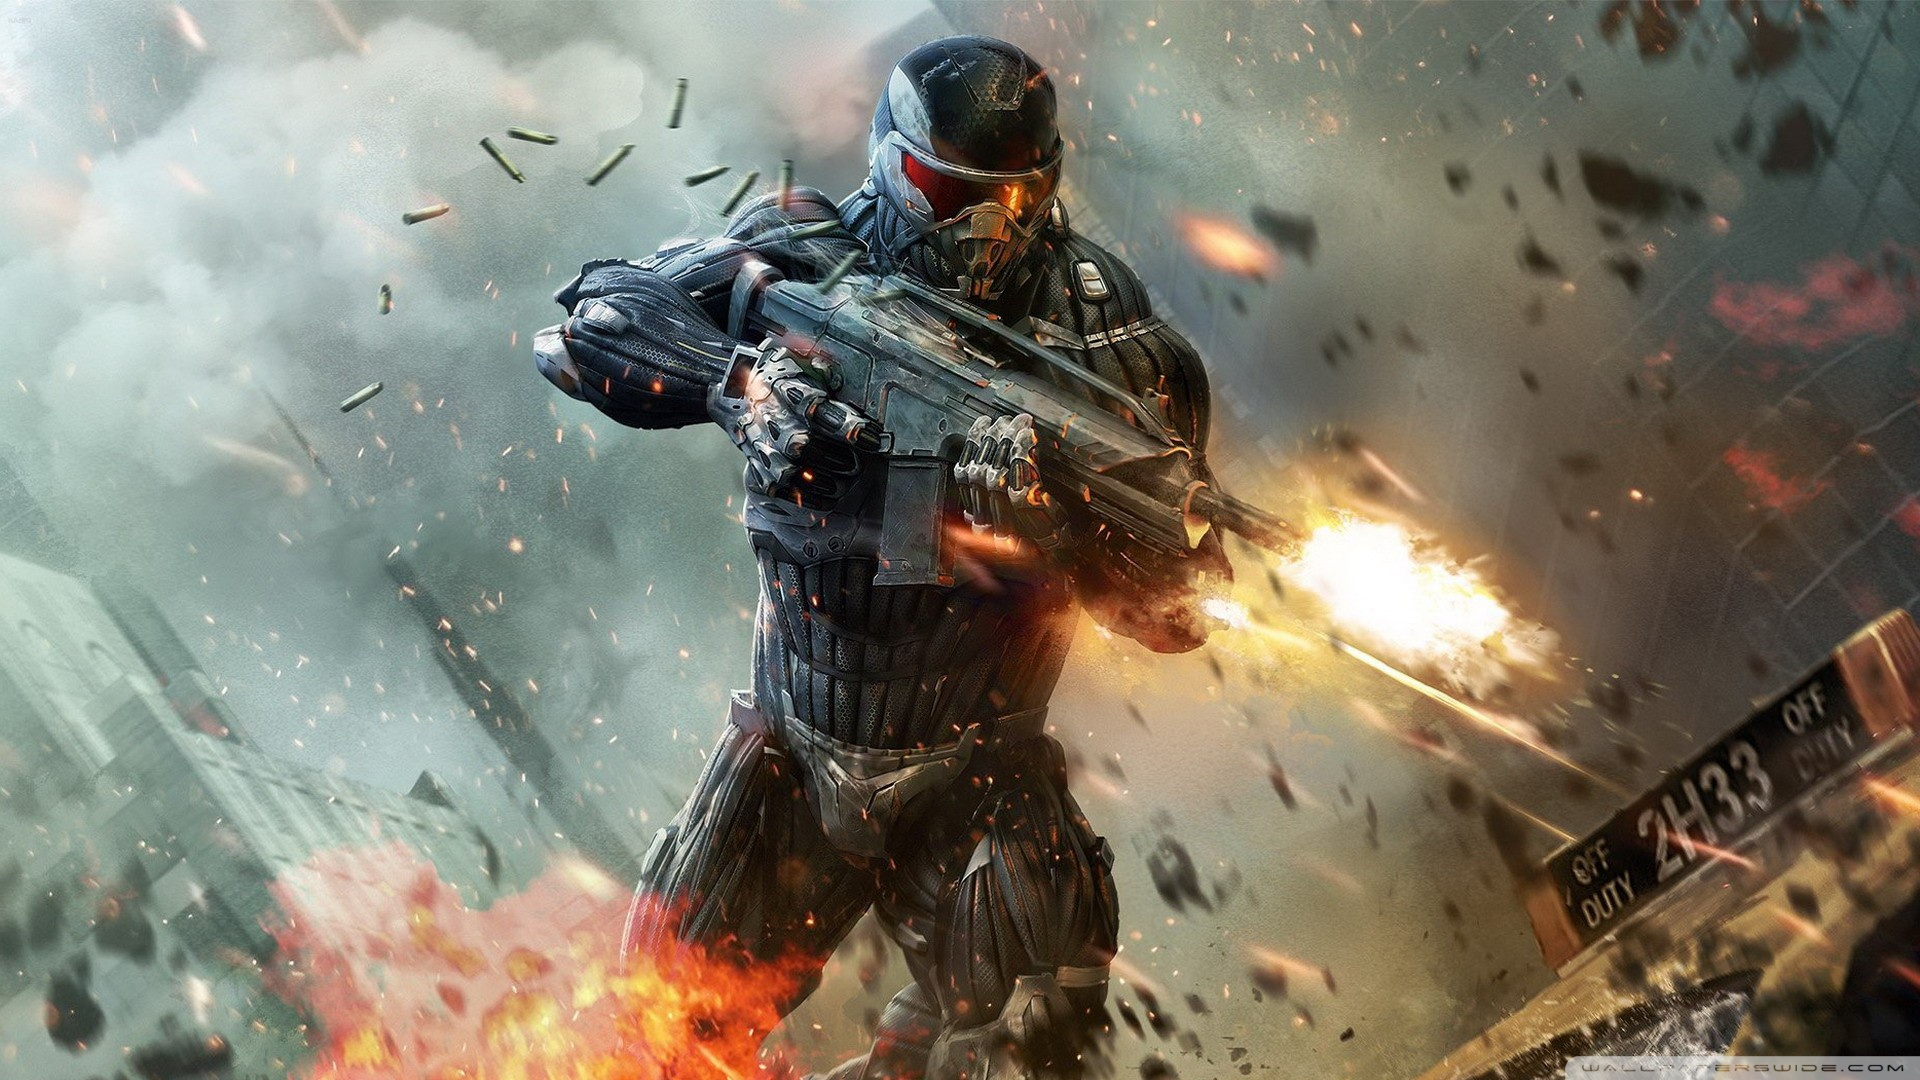 Shooter Video Game Wallpaper 1920x1080 Crysis 2 Shooter Video Game 1920x1080